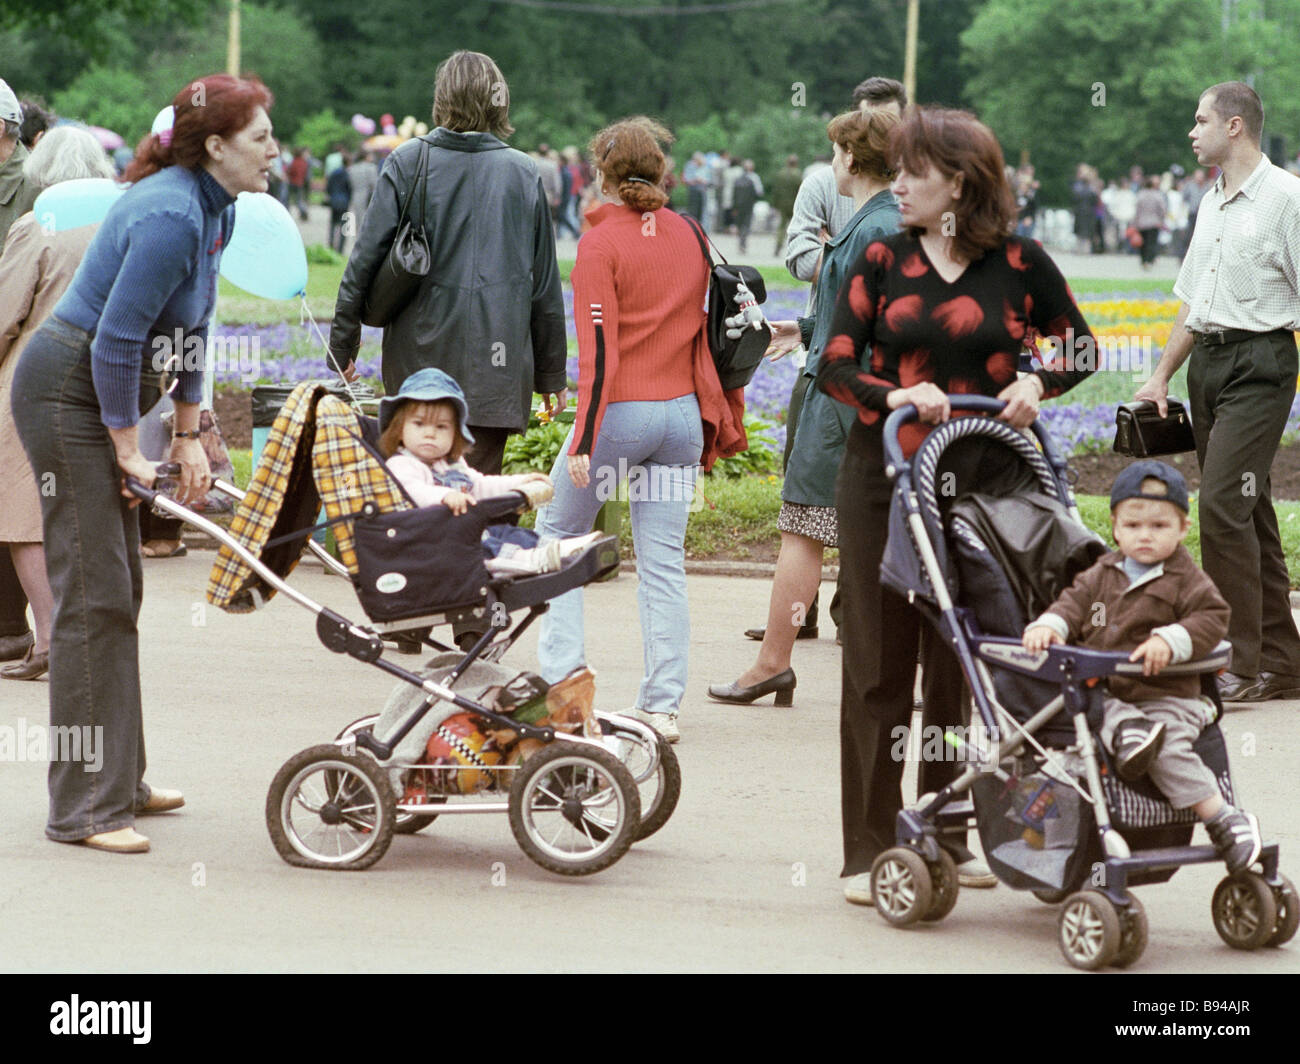 Muscovites and guests of the capital strolling about Sokolniki Park - Stock Image